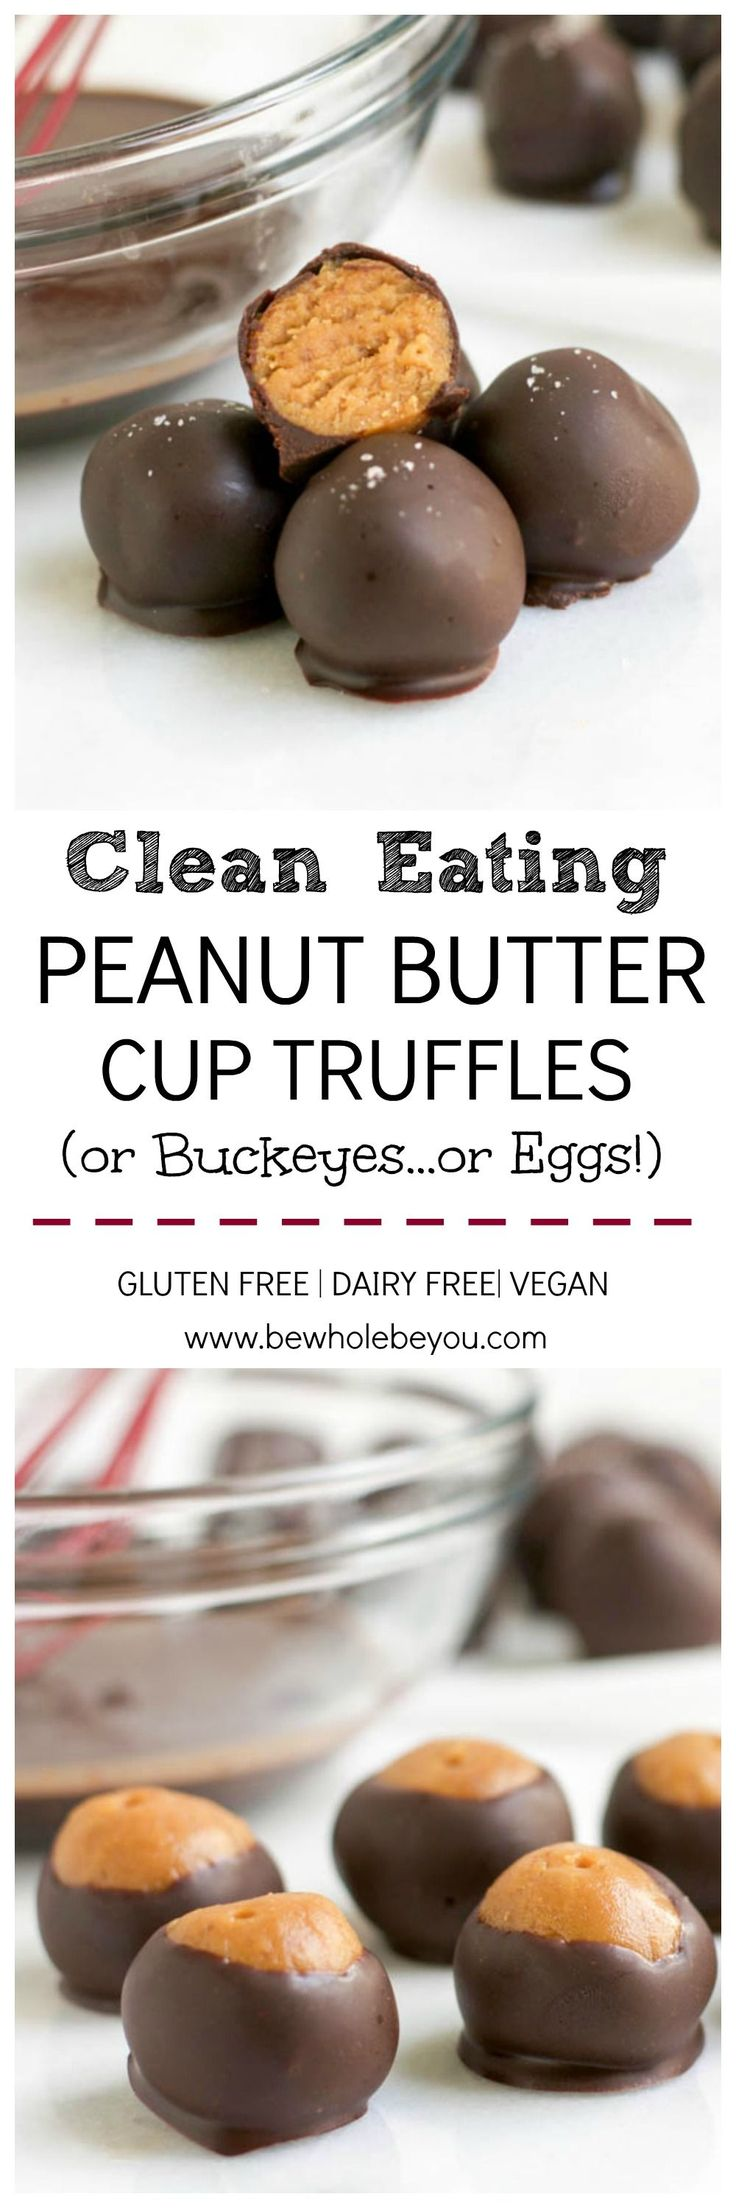 Clean Eating Peanut Butter Cup Truffles. Be Whole. Be You.